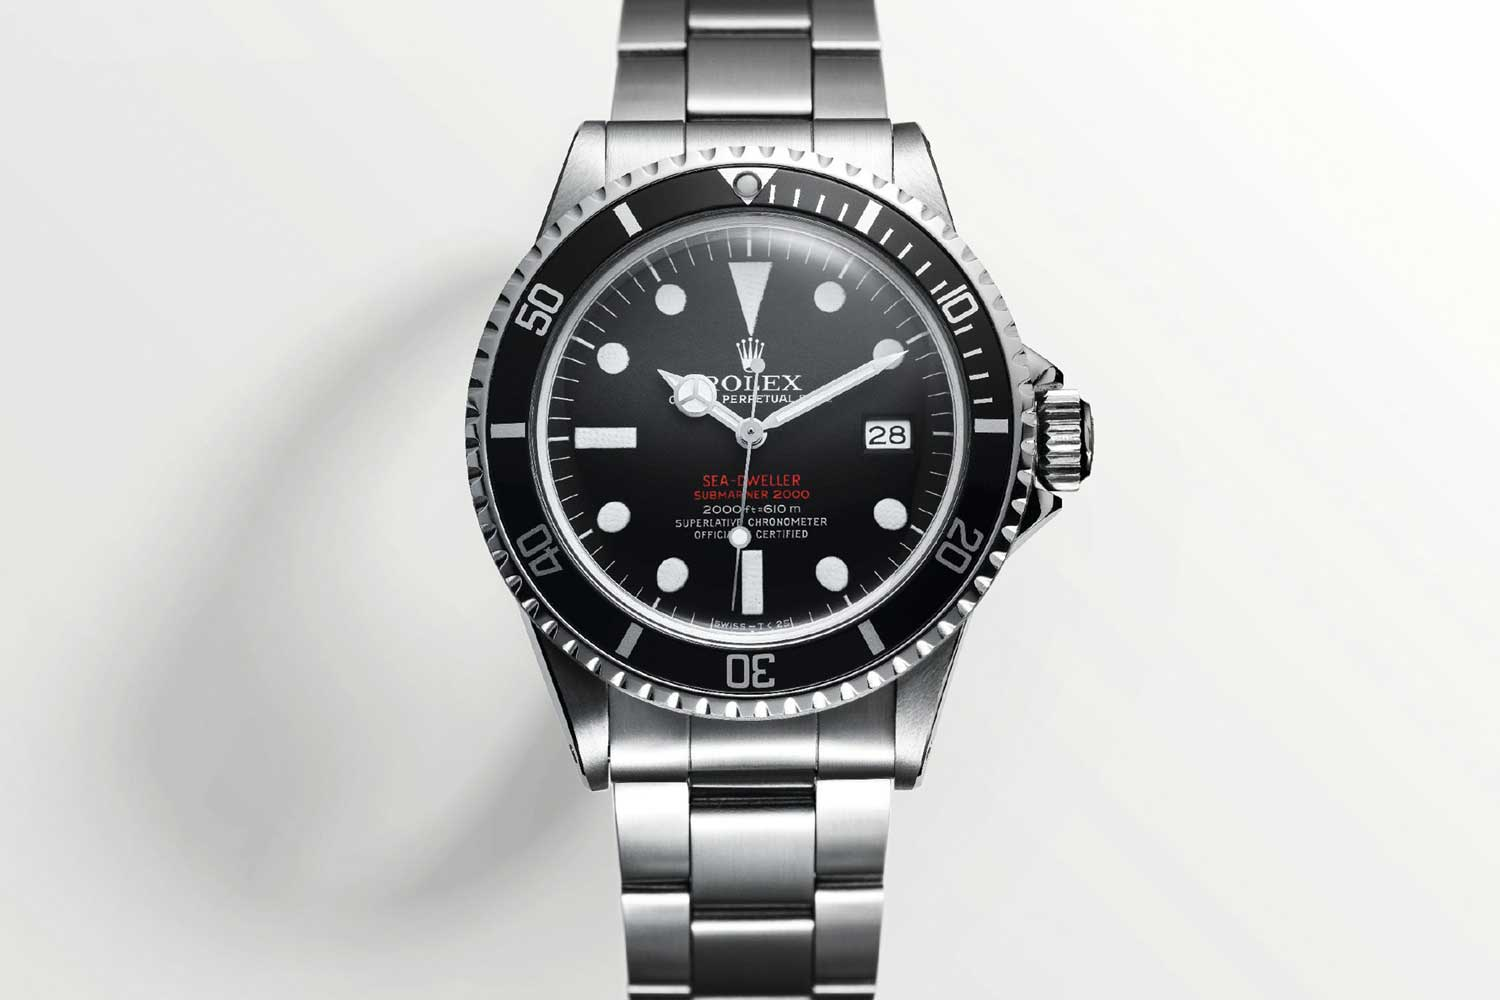 The first version of the Sea-Dweller from 1967